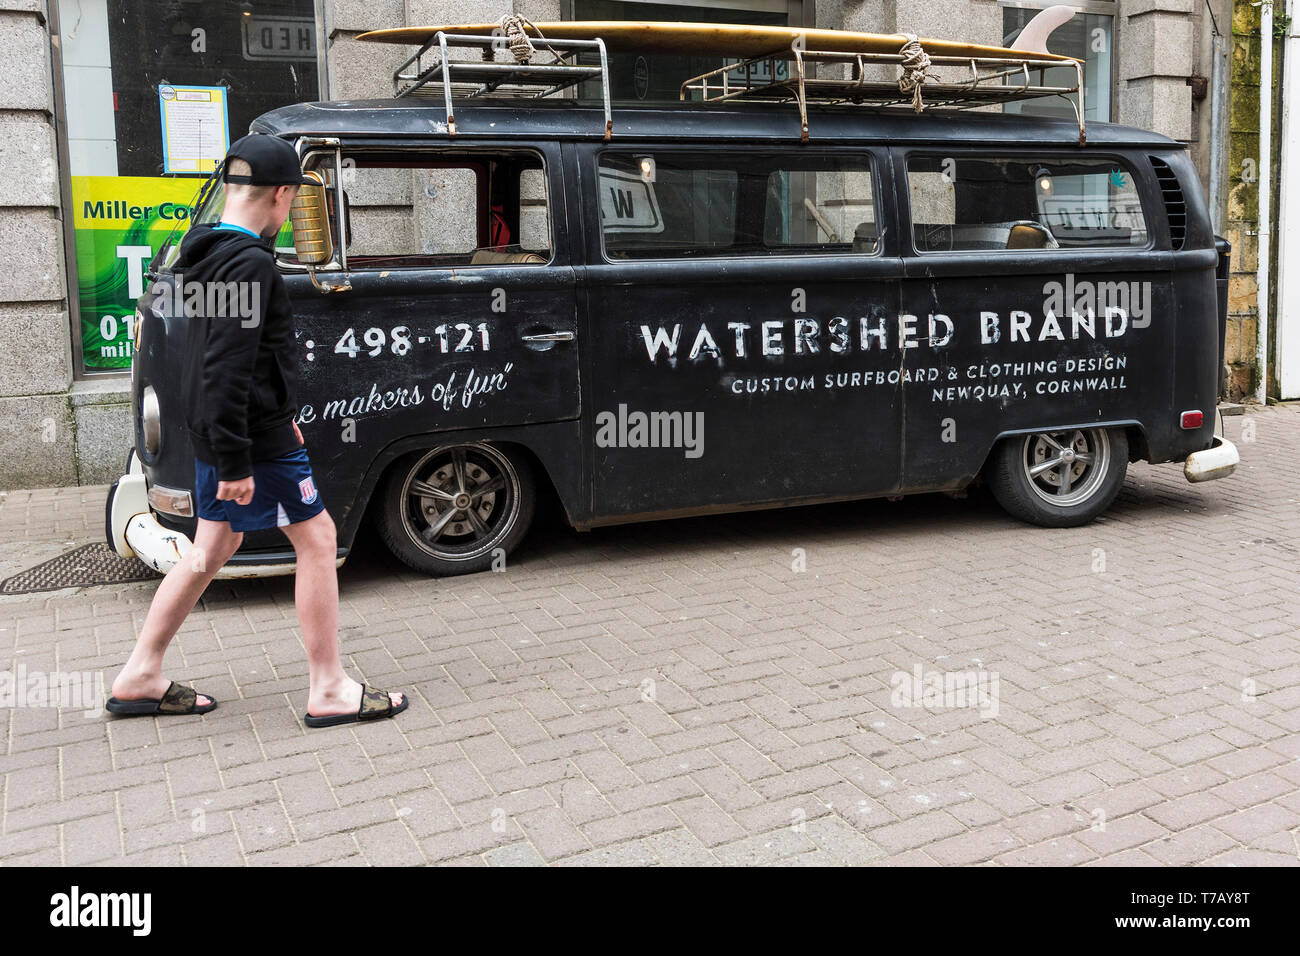 A young holidaymaker admires a vintage rat look Volkswagen campervan advertising Watershed Brand parked in Newquay Town Centre in Cornwall. - Stock Image